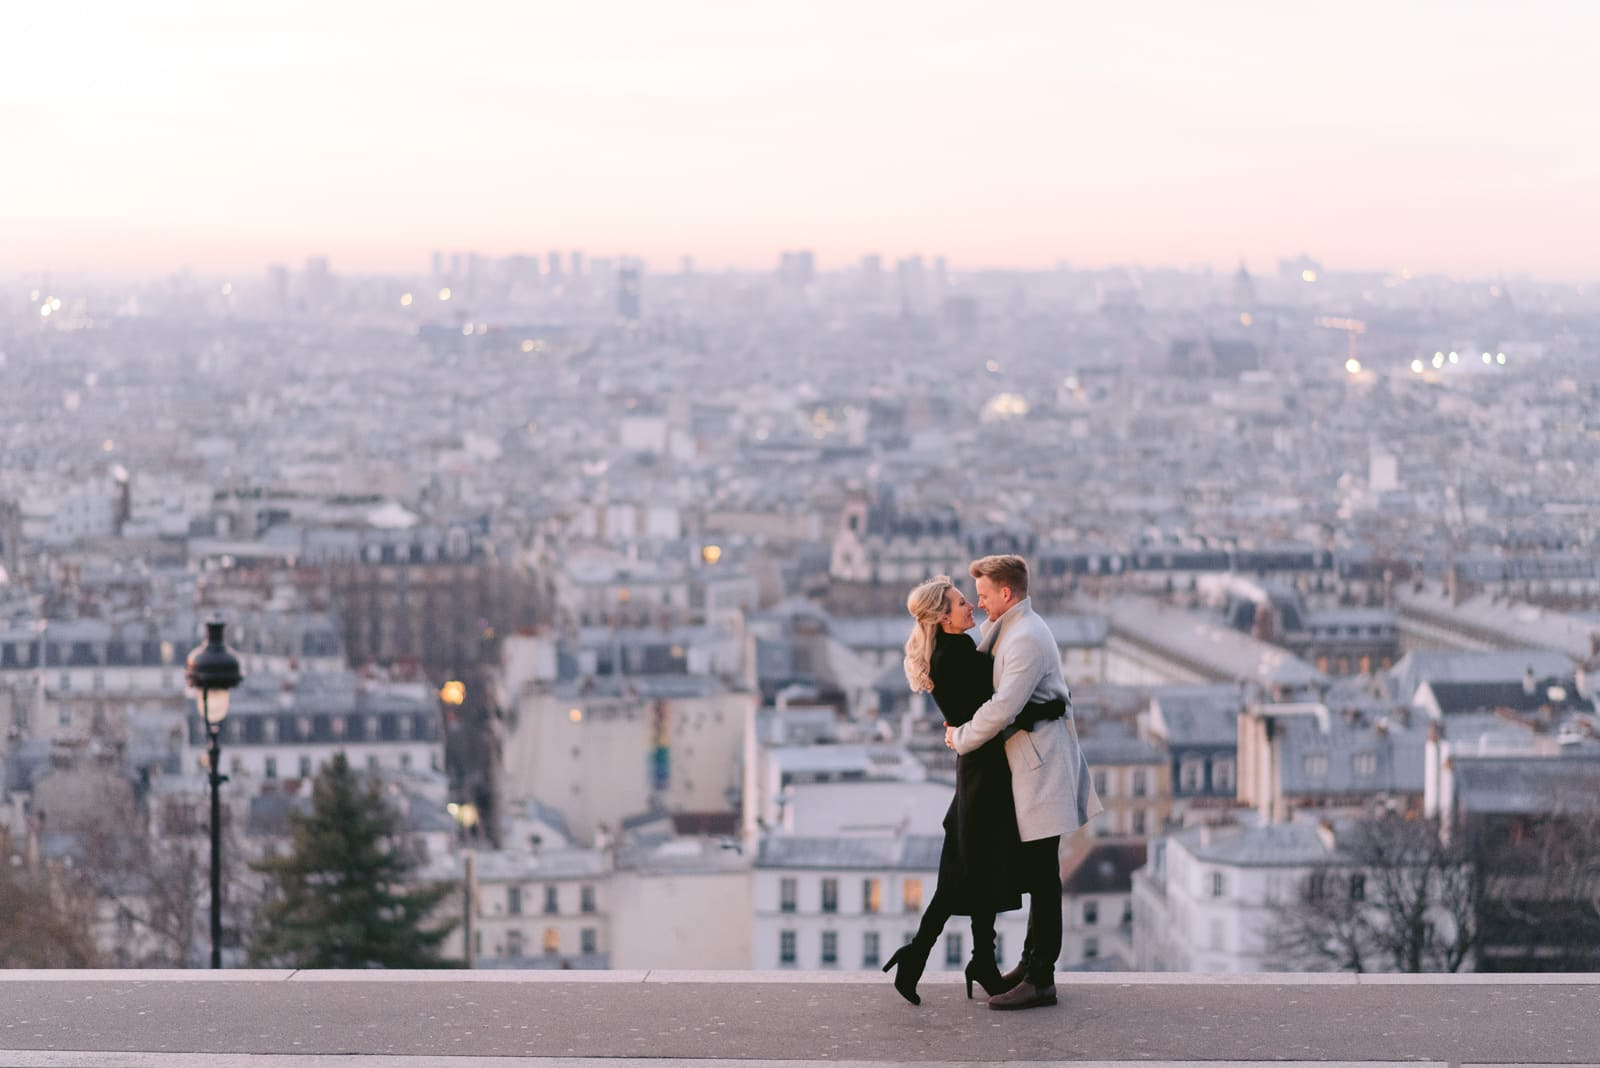 Paris proposal photographer - Engagement photos at Montmartre overlooking the city of Paris